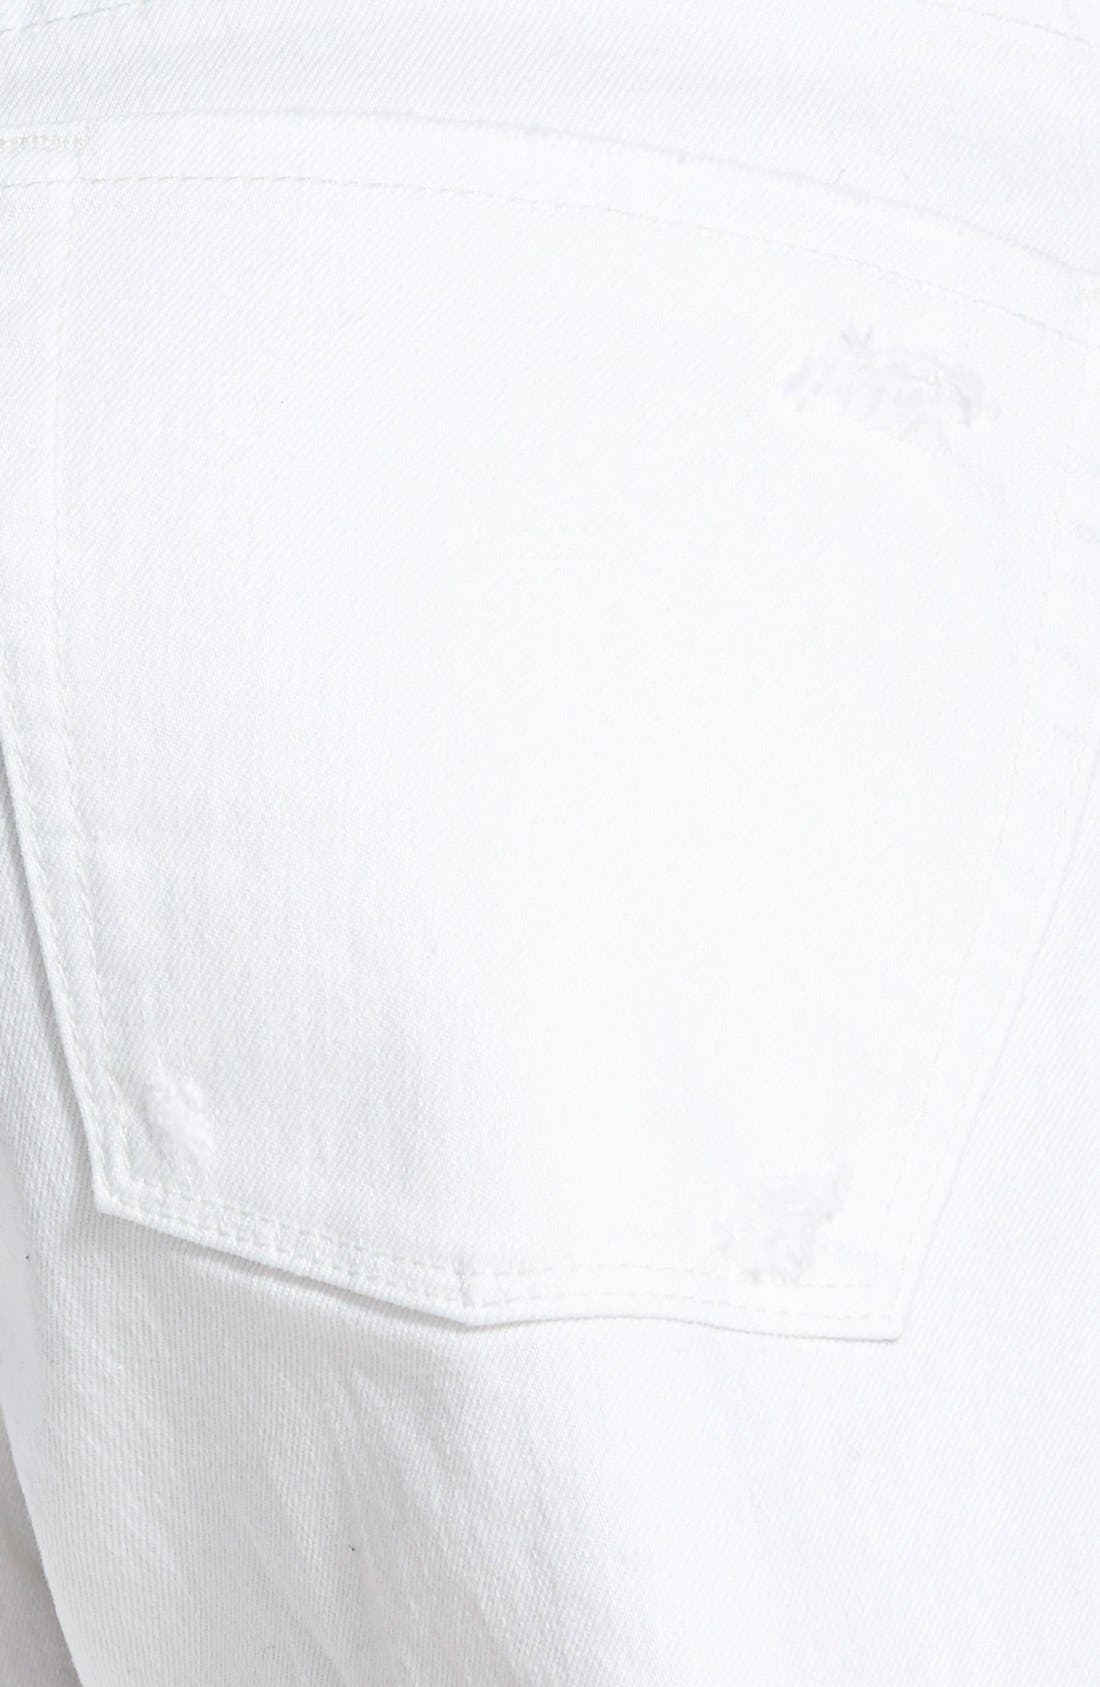 Alternate Image 3  - Treasure&Bond Cutoff Shorts (White Worn)